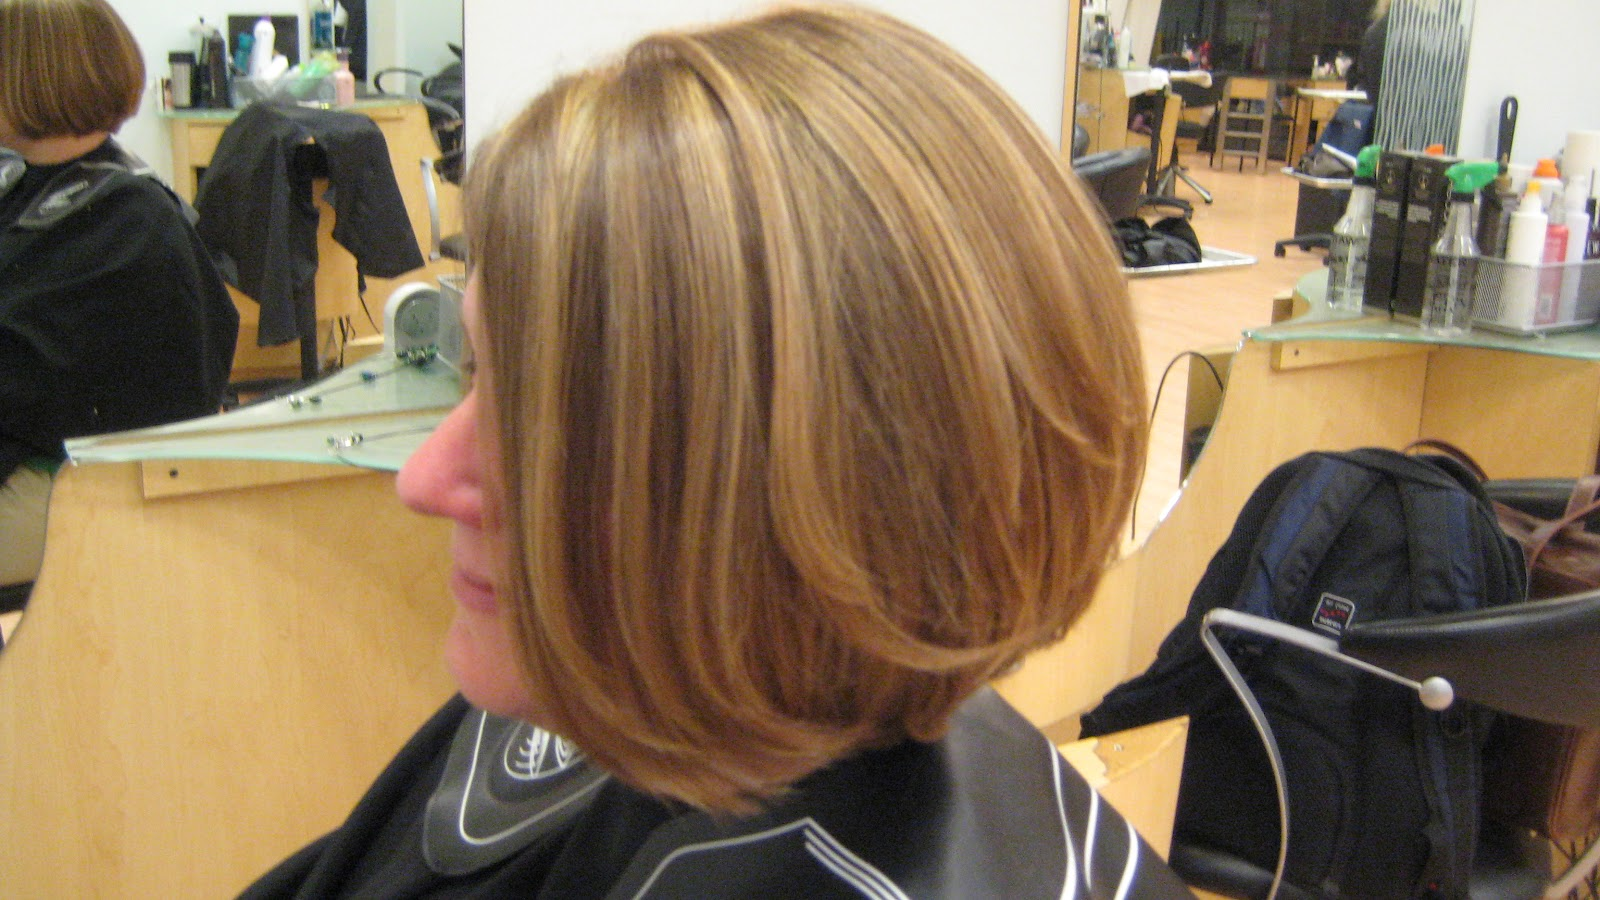 Hairstylist How To Light Brown Hair With Blonde Highlights Before